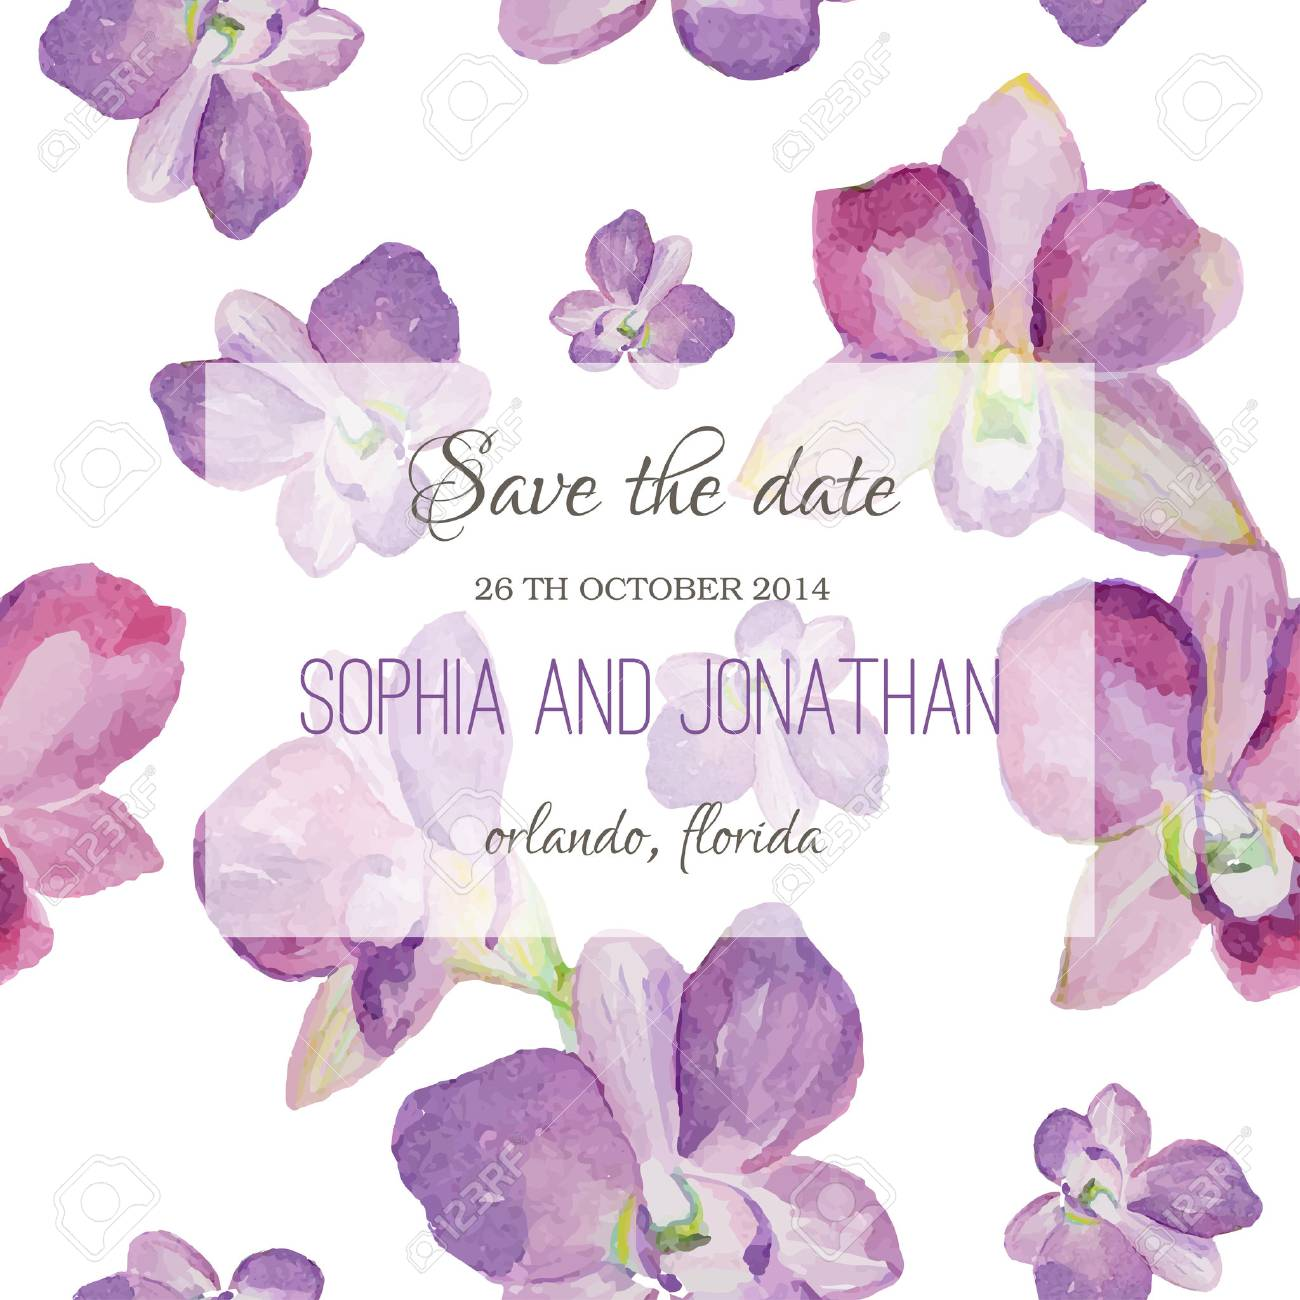 Wedding Invitation Watercolor With Orchid Flowers Illustration